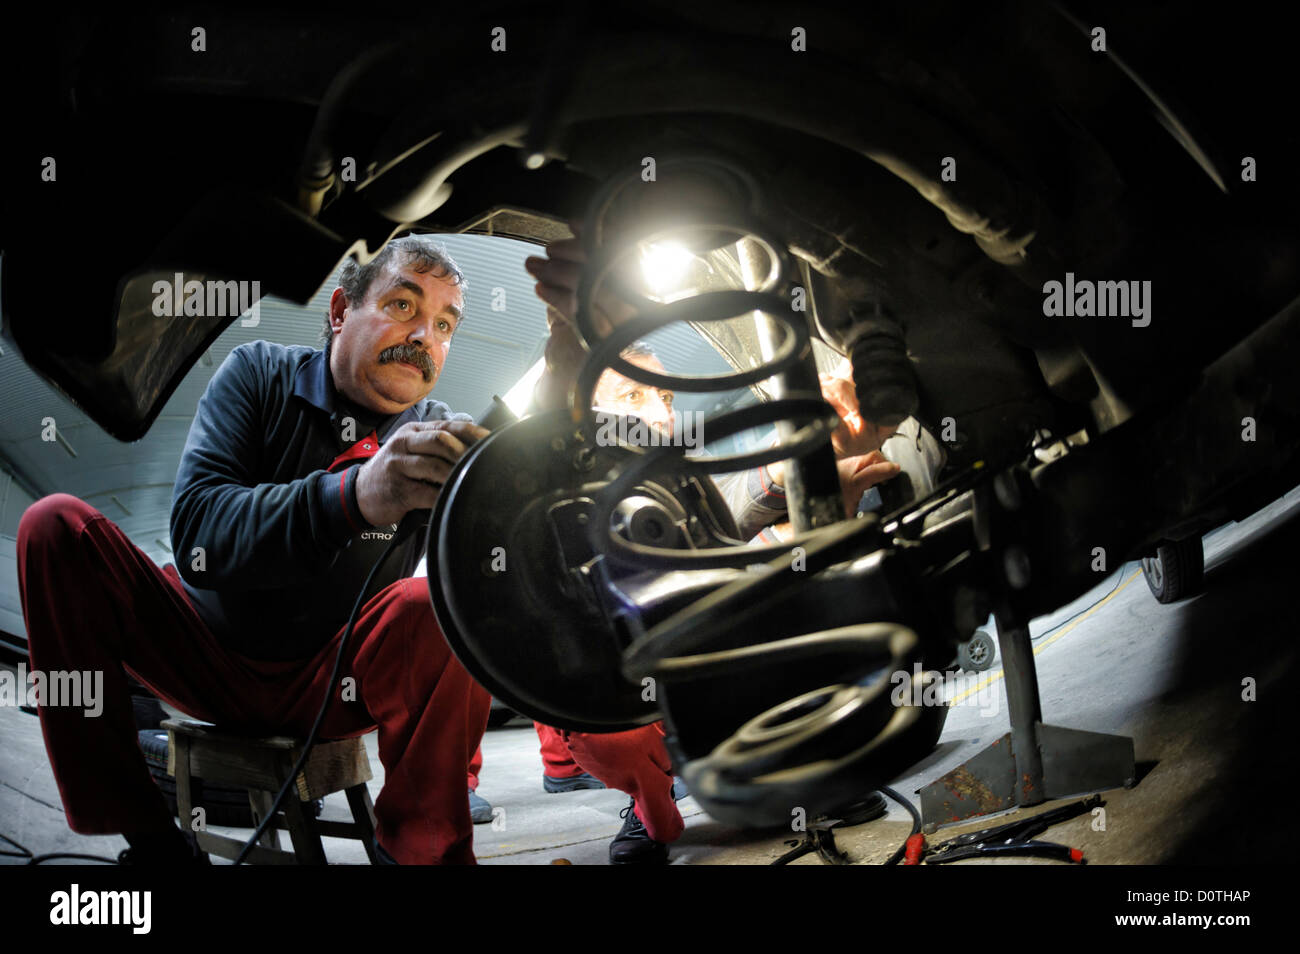 Mechanic working in auto garage - Stock Image